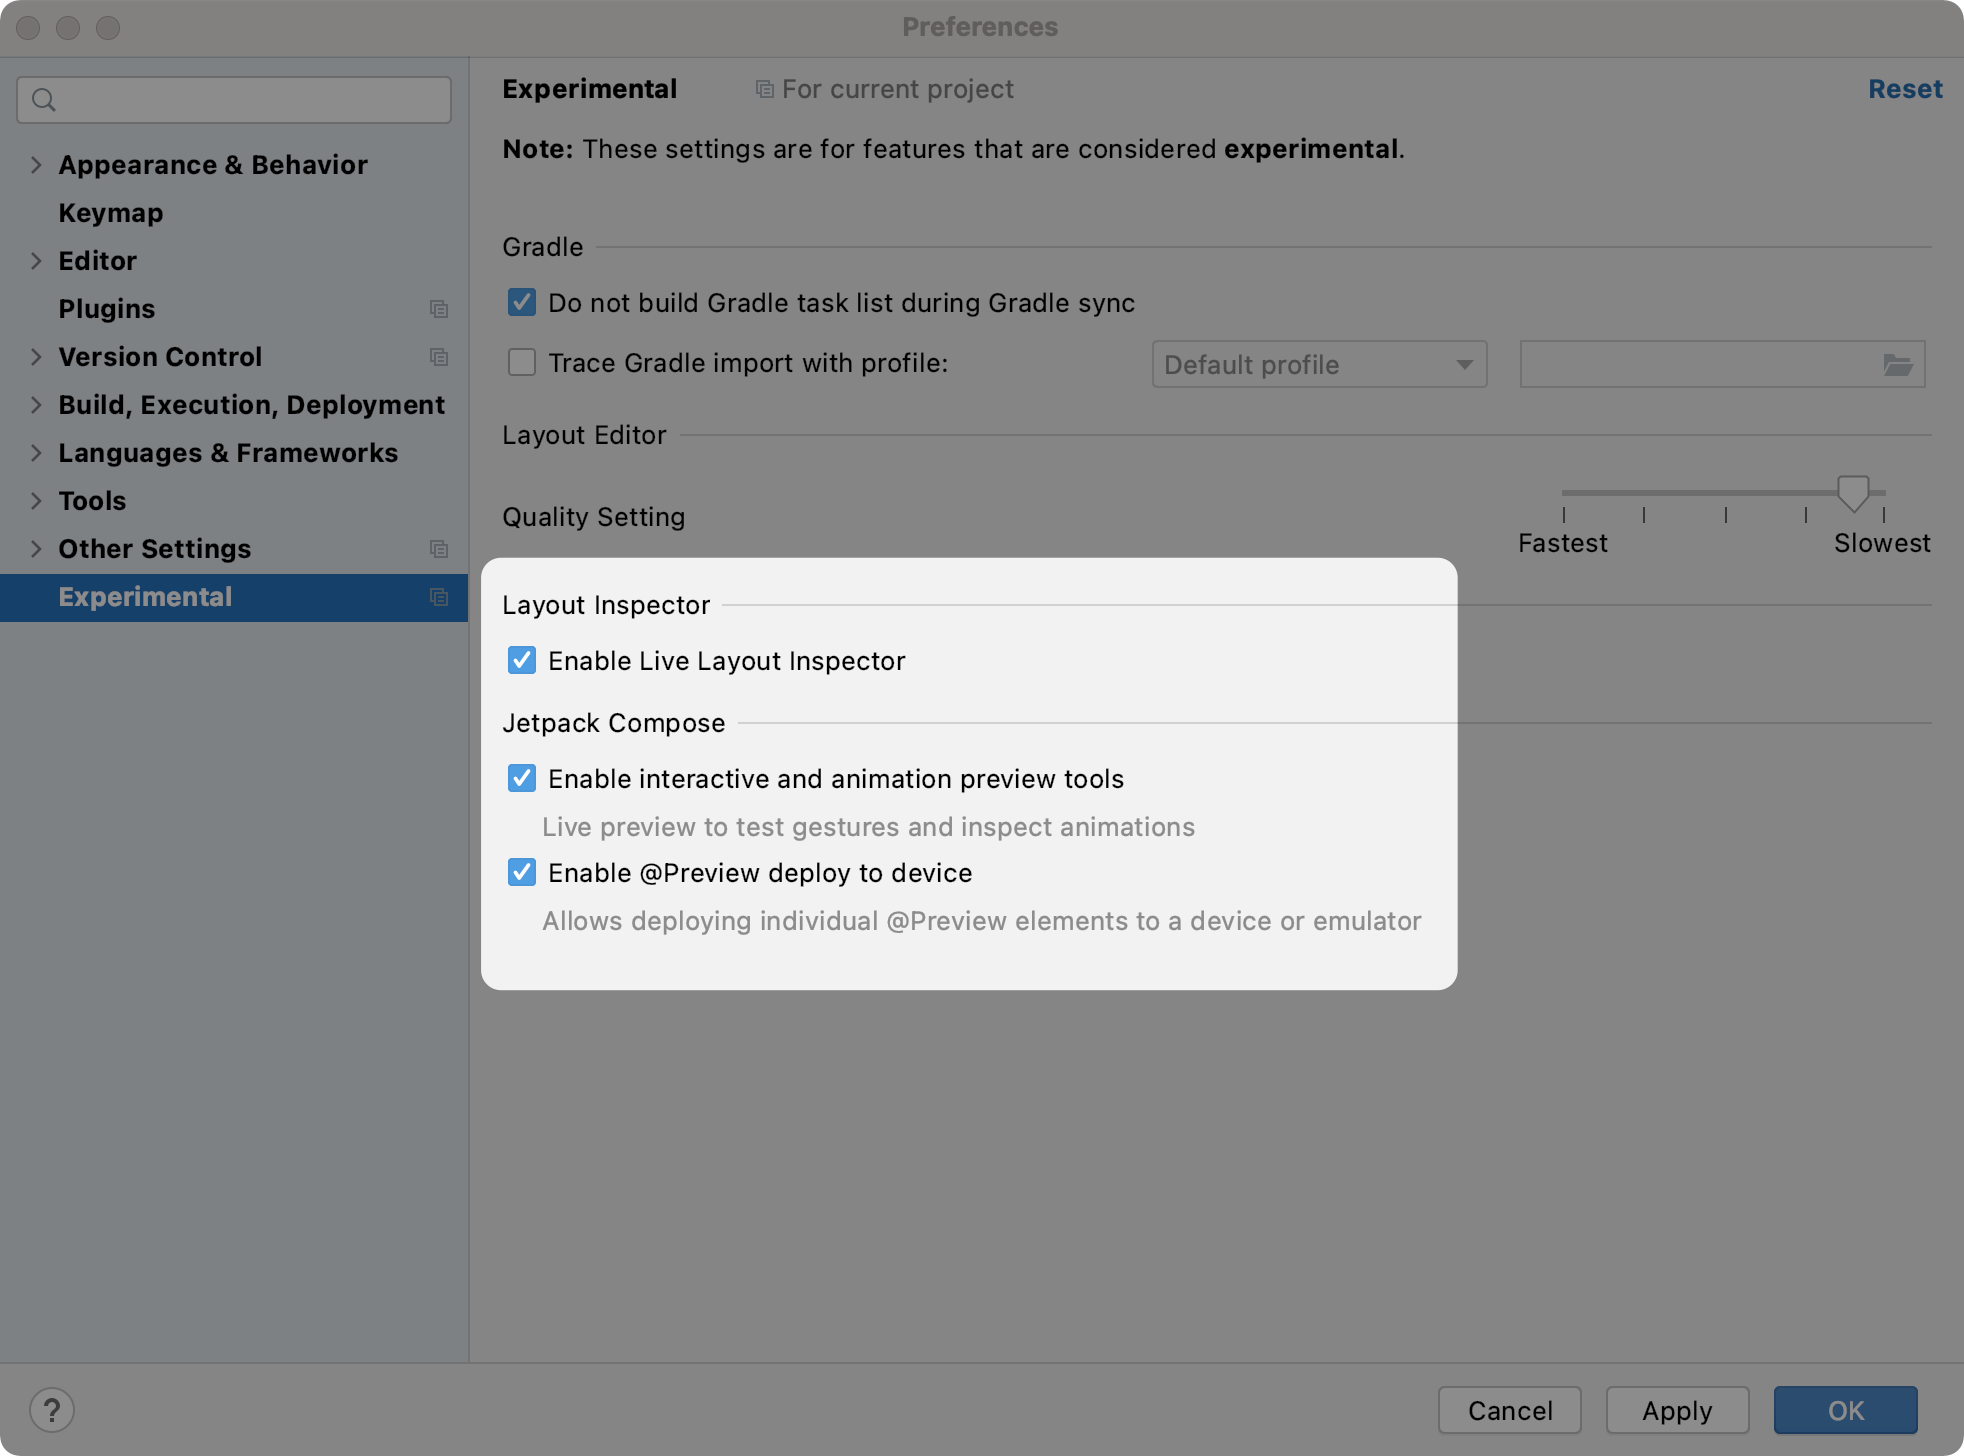 Compose tooling enabled inside the Android Studio Experiemental preferences